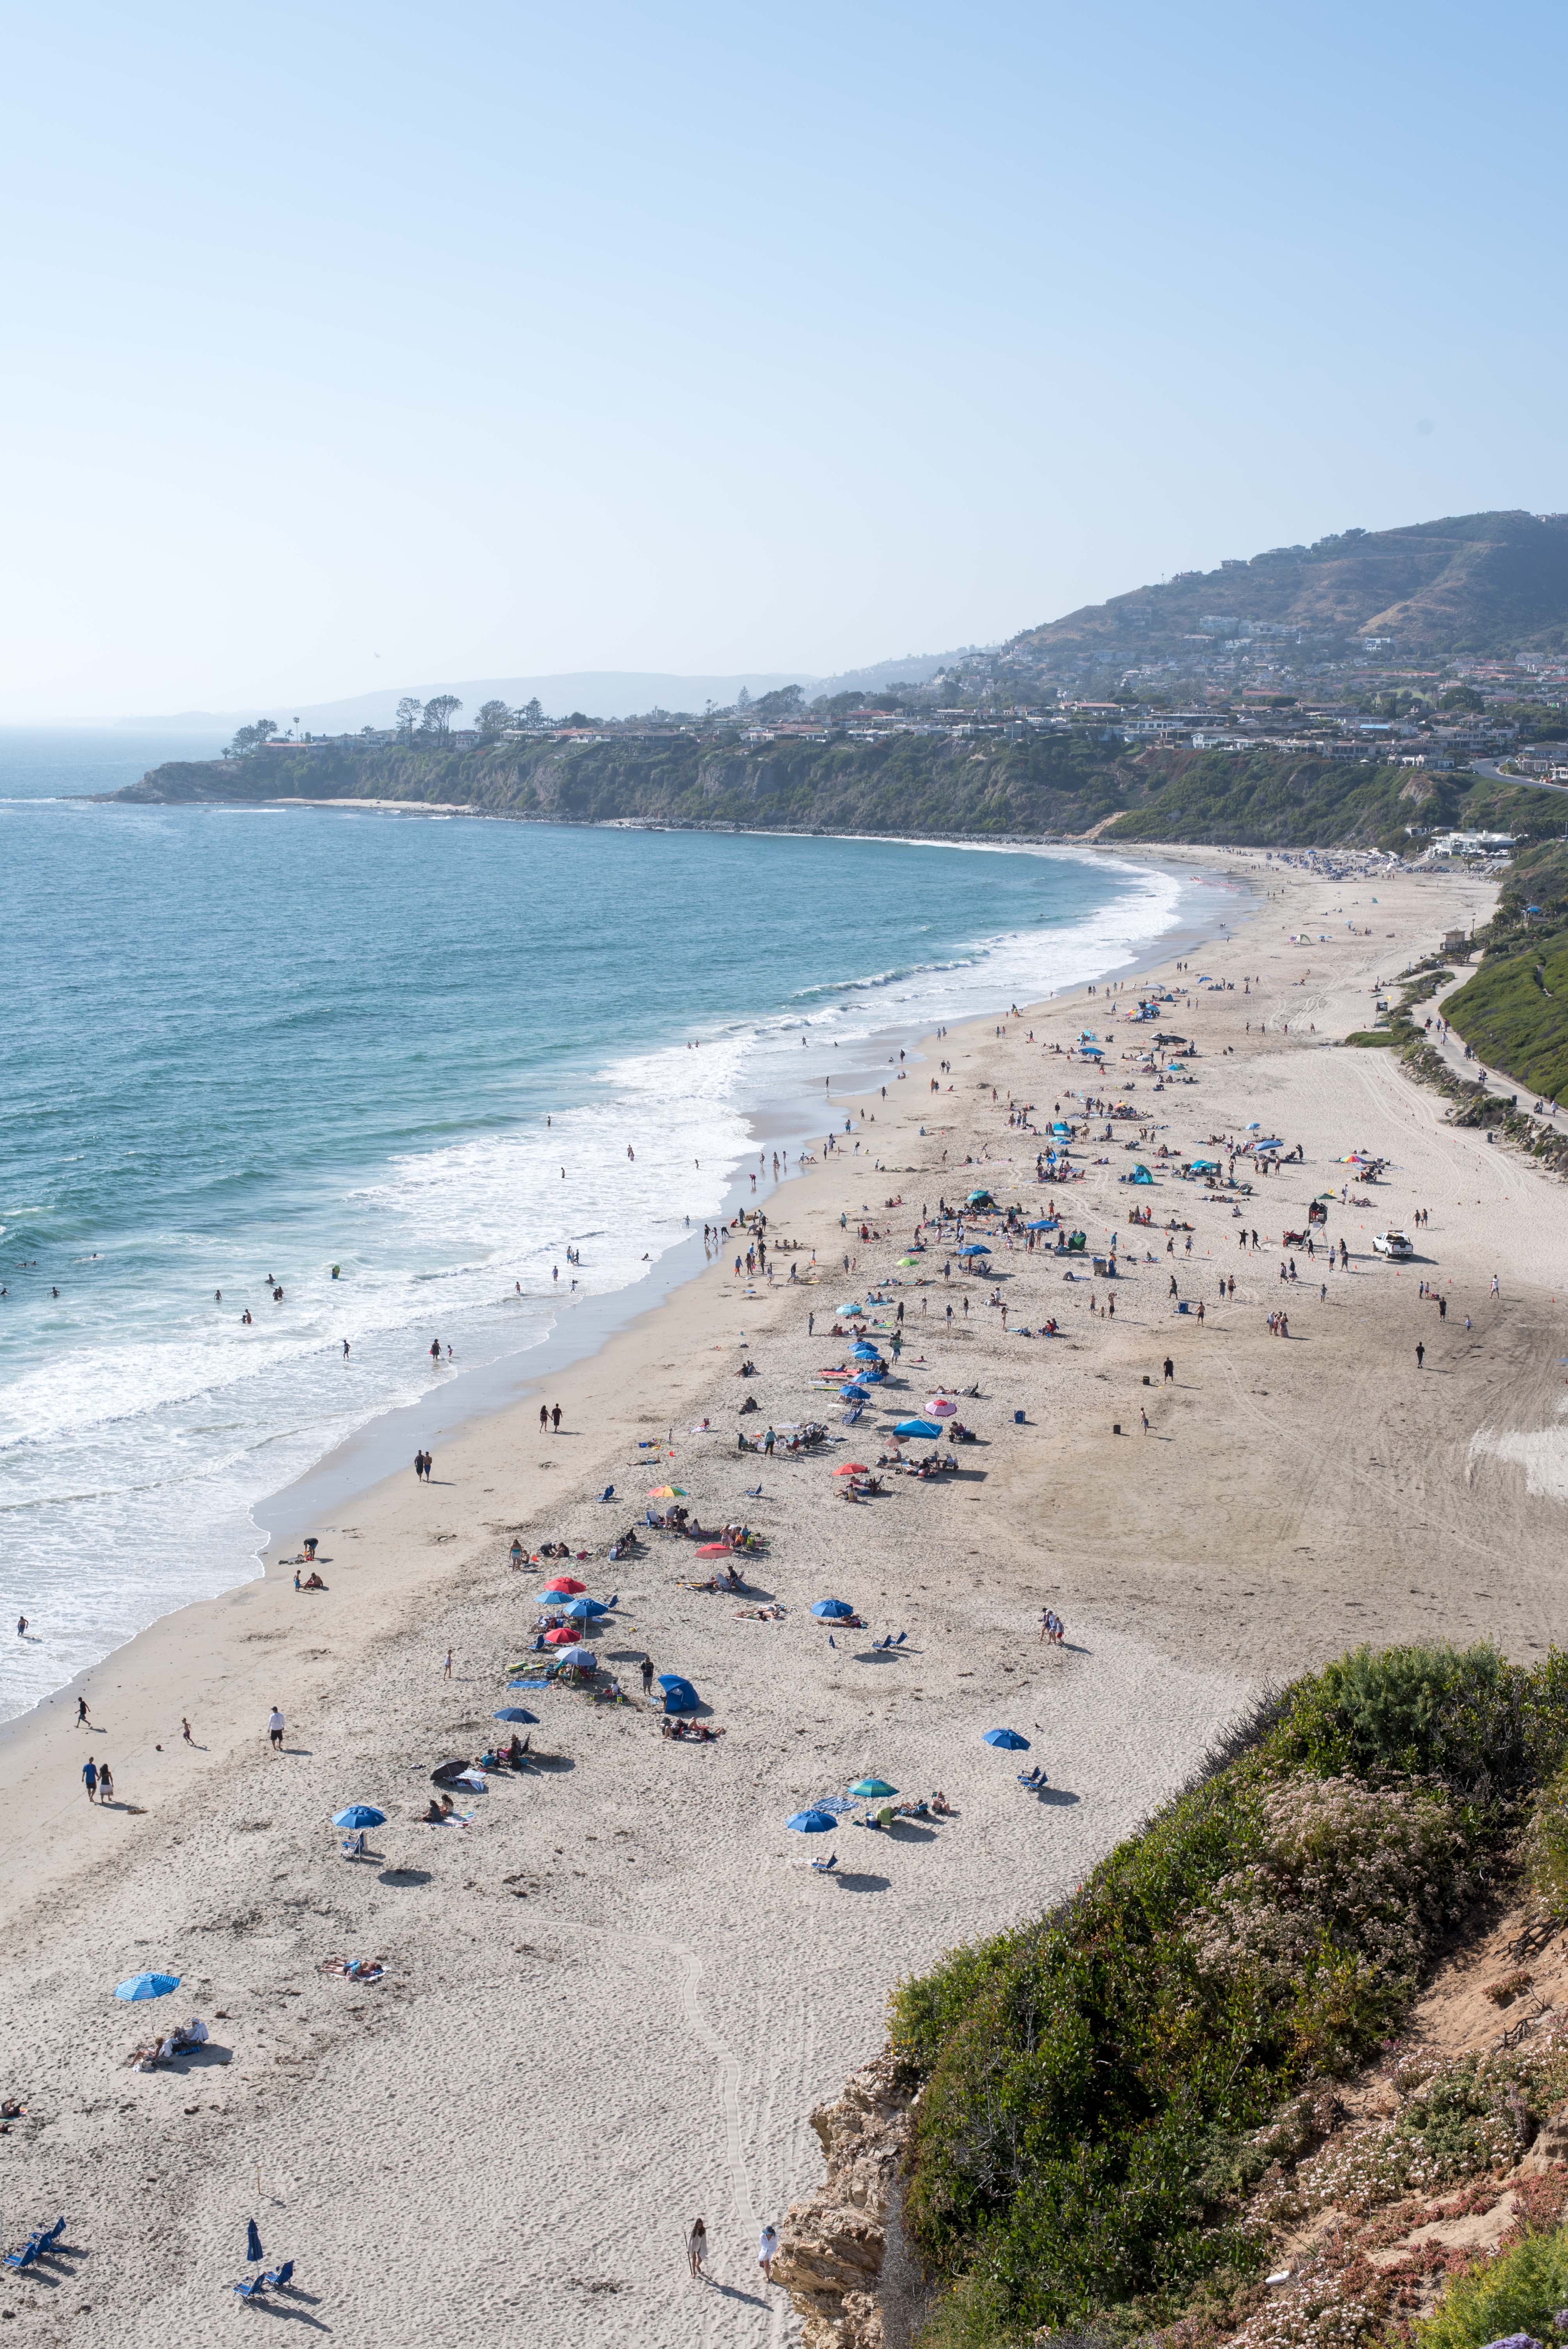 Ritz-Carlton Laguna Niguel, California Beach